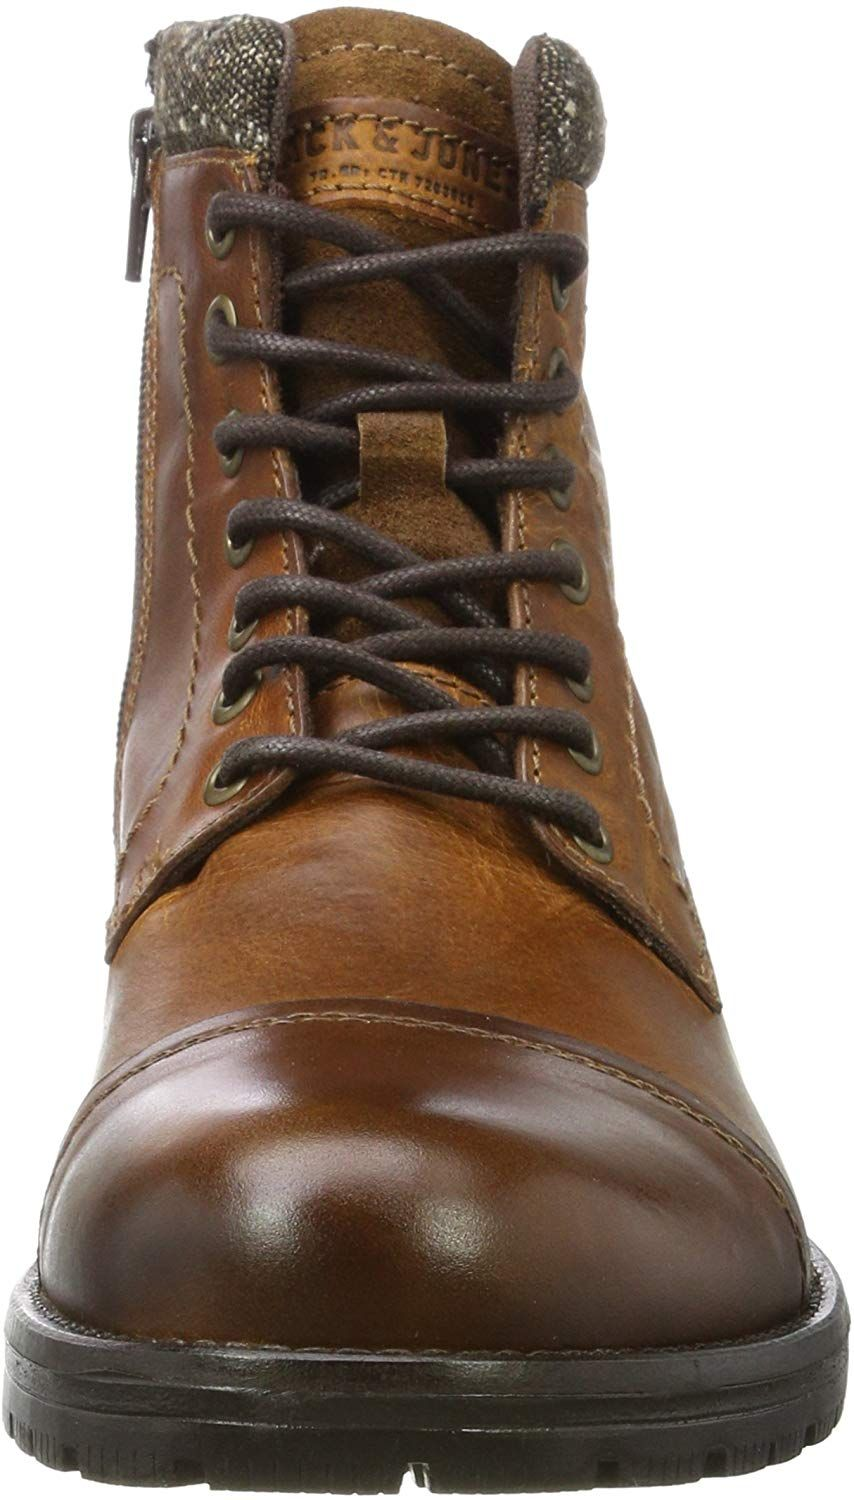 the best attitude b7358 54933 Jack  Jones Jfwmarly Leather, Botas Clasicas para Hombre, Marrón (Cognac),